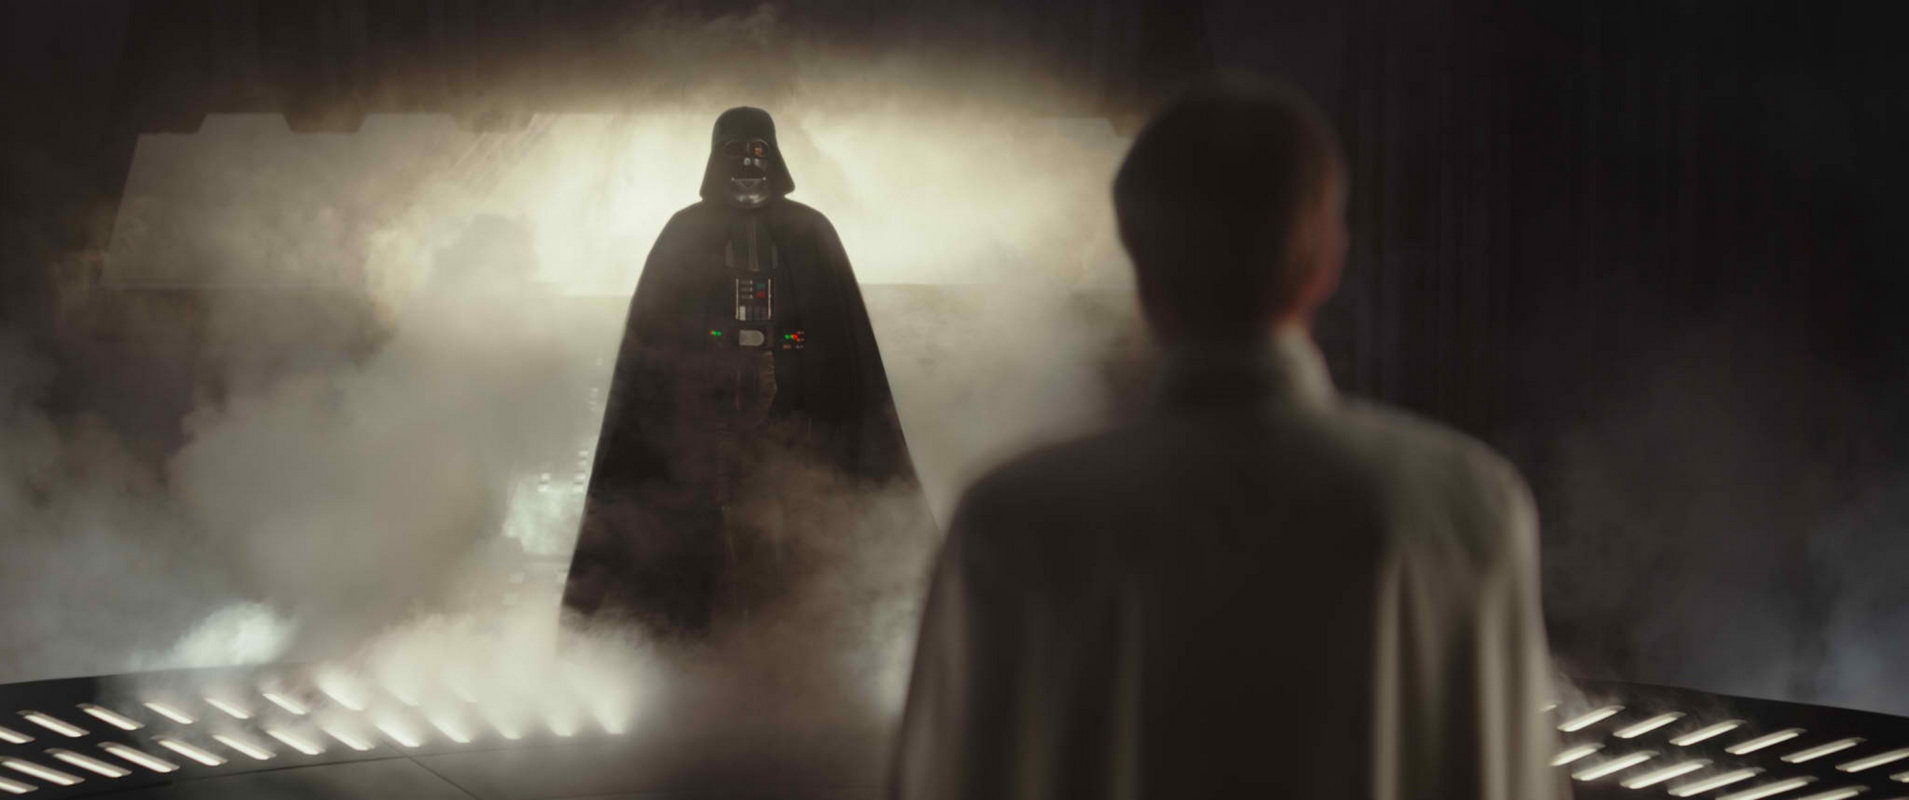 rogue one trailer 2 darth vader